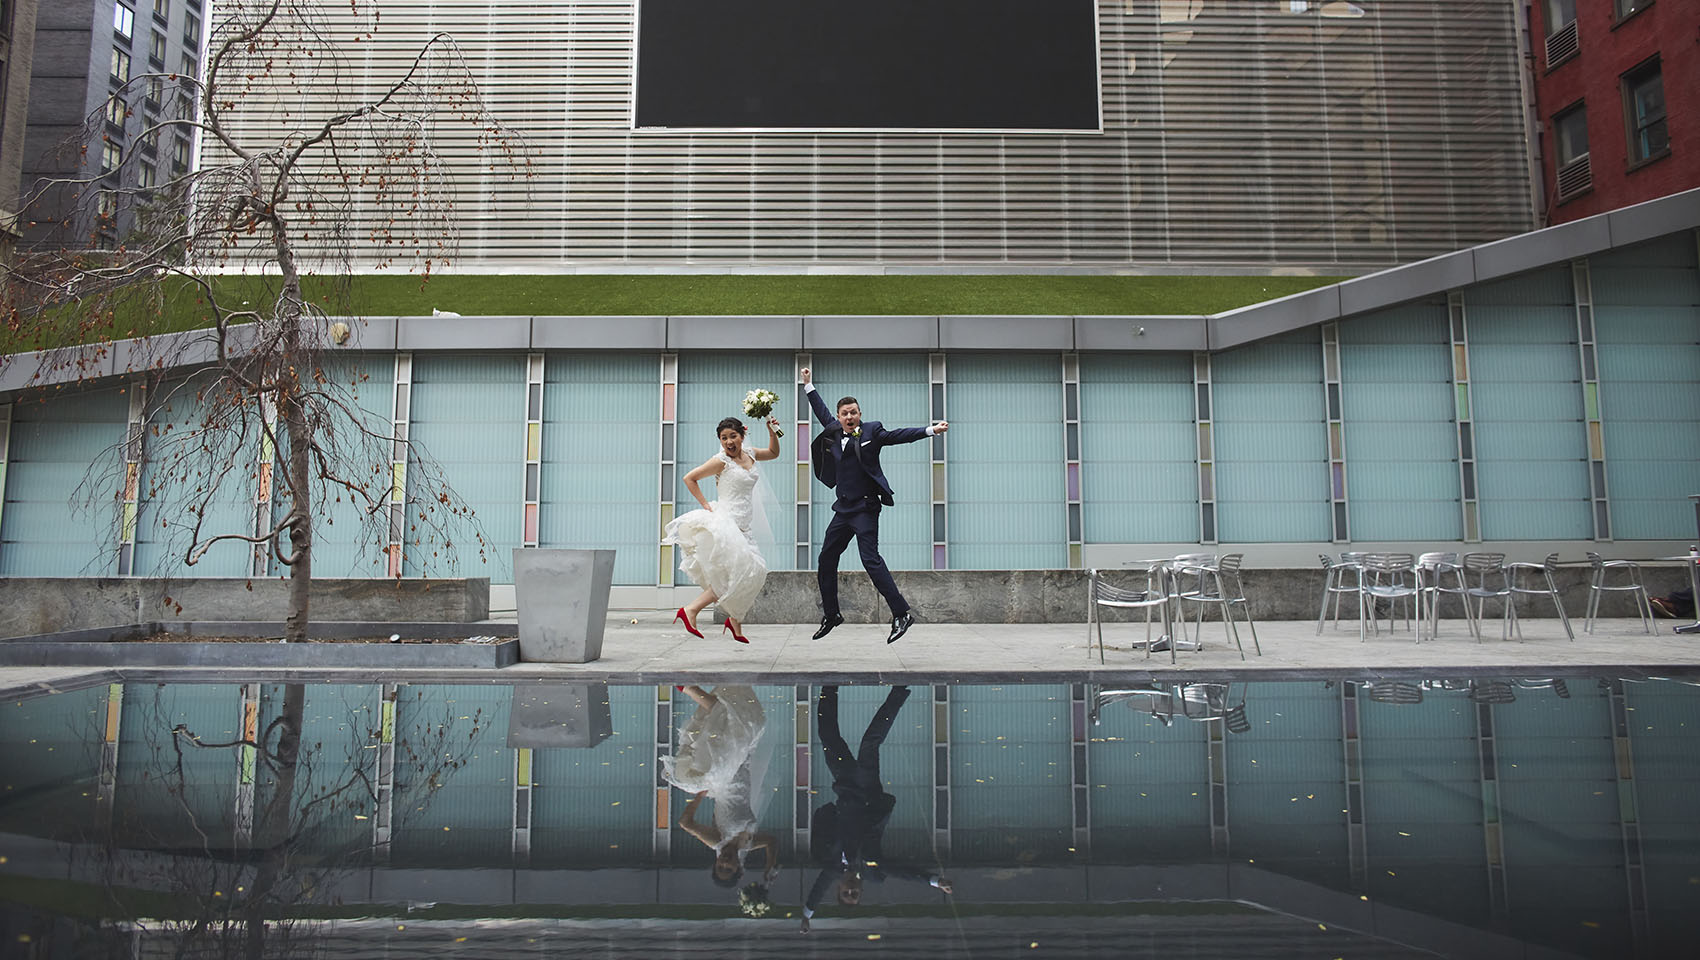 Yoko and Roman jumping in joy at Kimpton Hotel Eventi's Big Screen Plaza